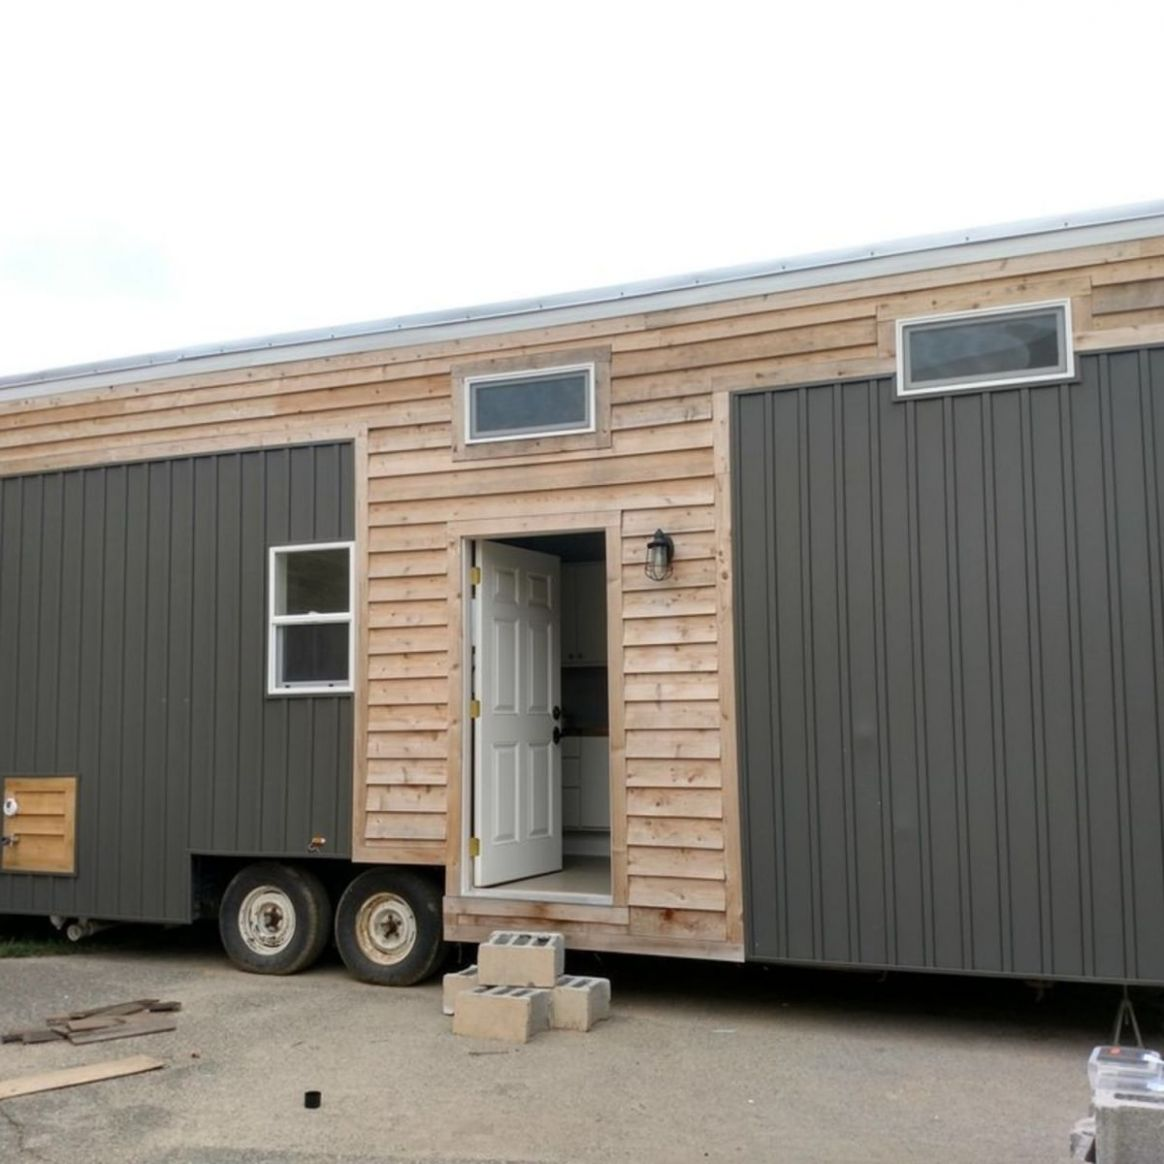 Beautiful tiny house WITH A CHANCE TO BE ON HGTV! - Tiny House for Sale in  Grand Rapids, Michigan - Tiny House Listings - tiny house michigan